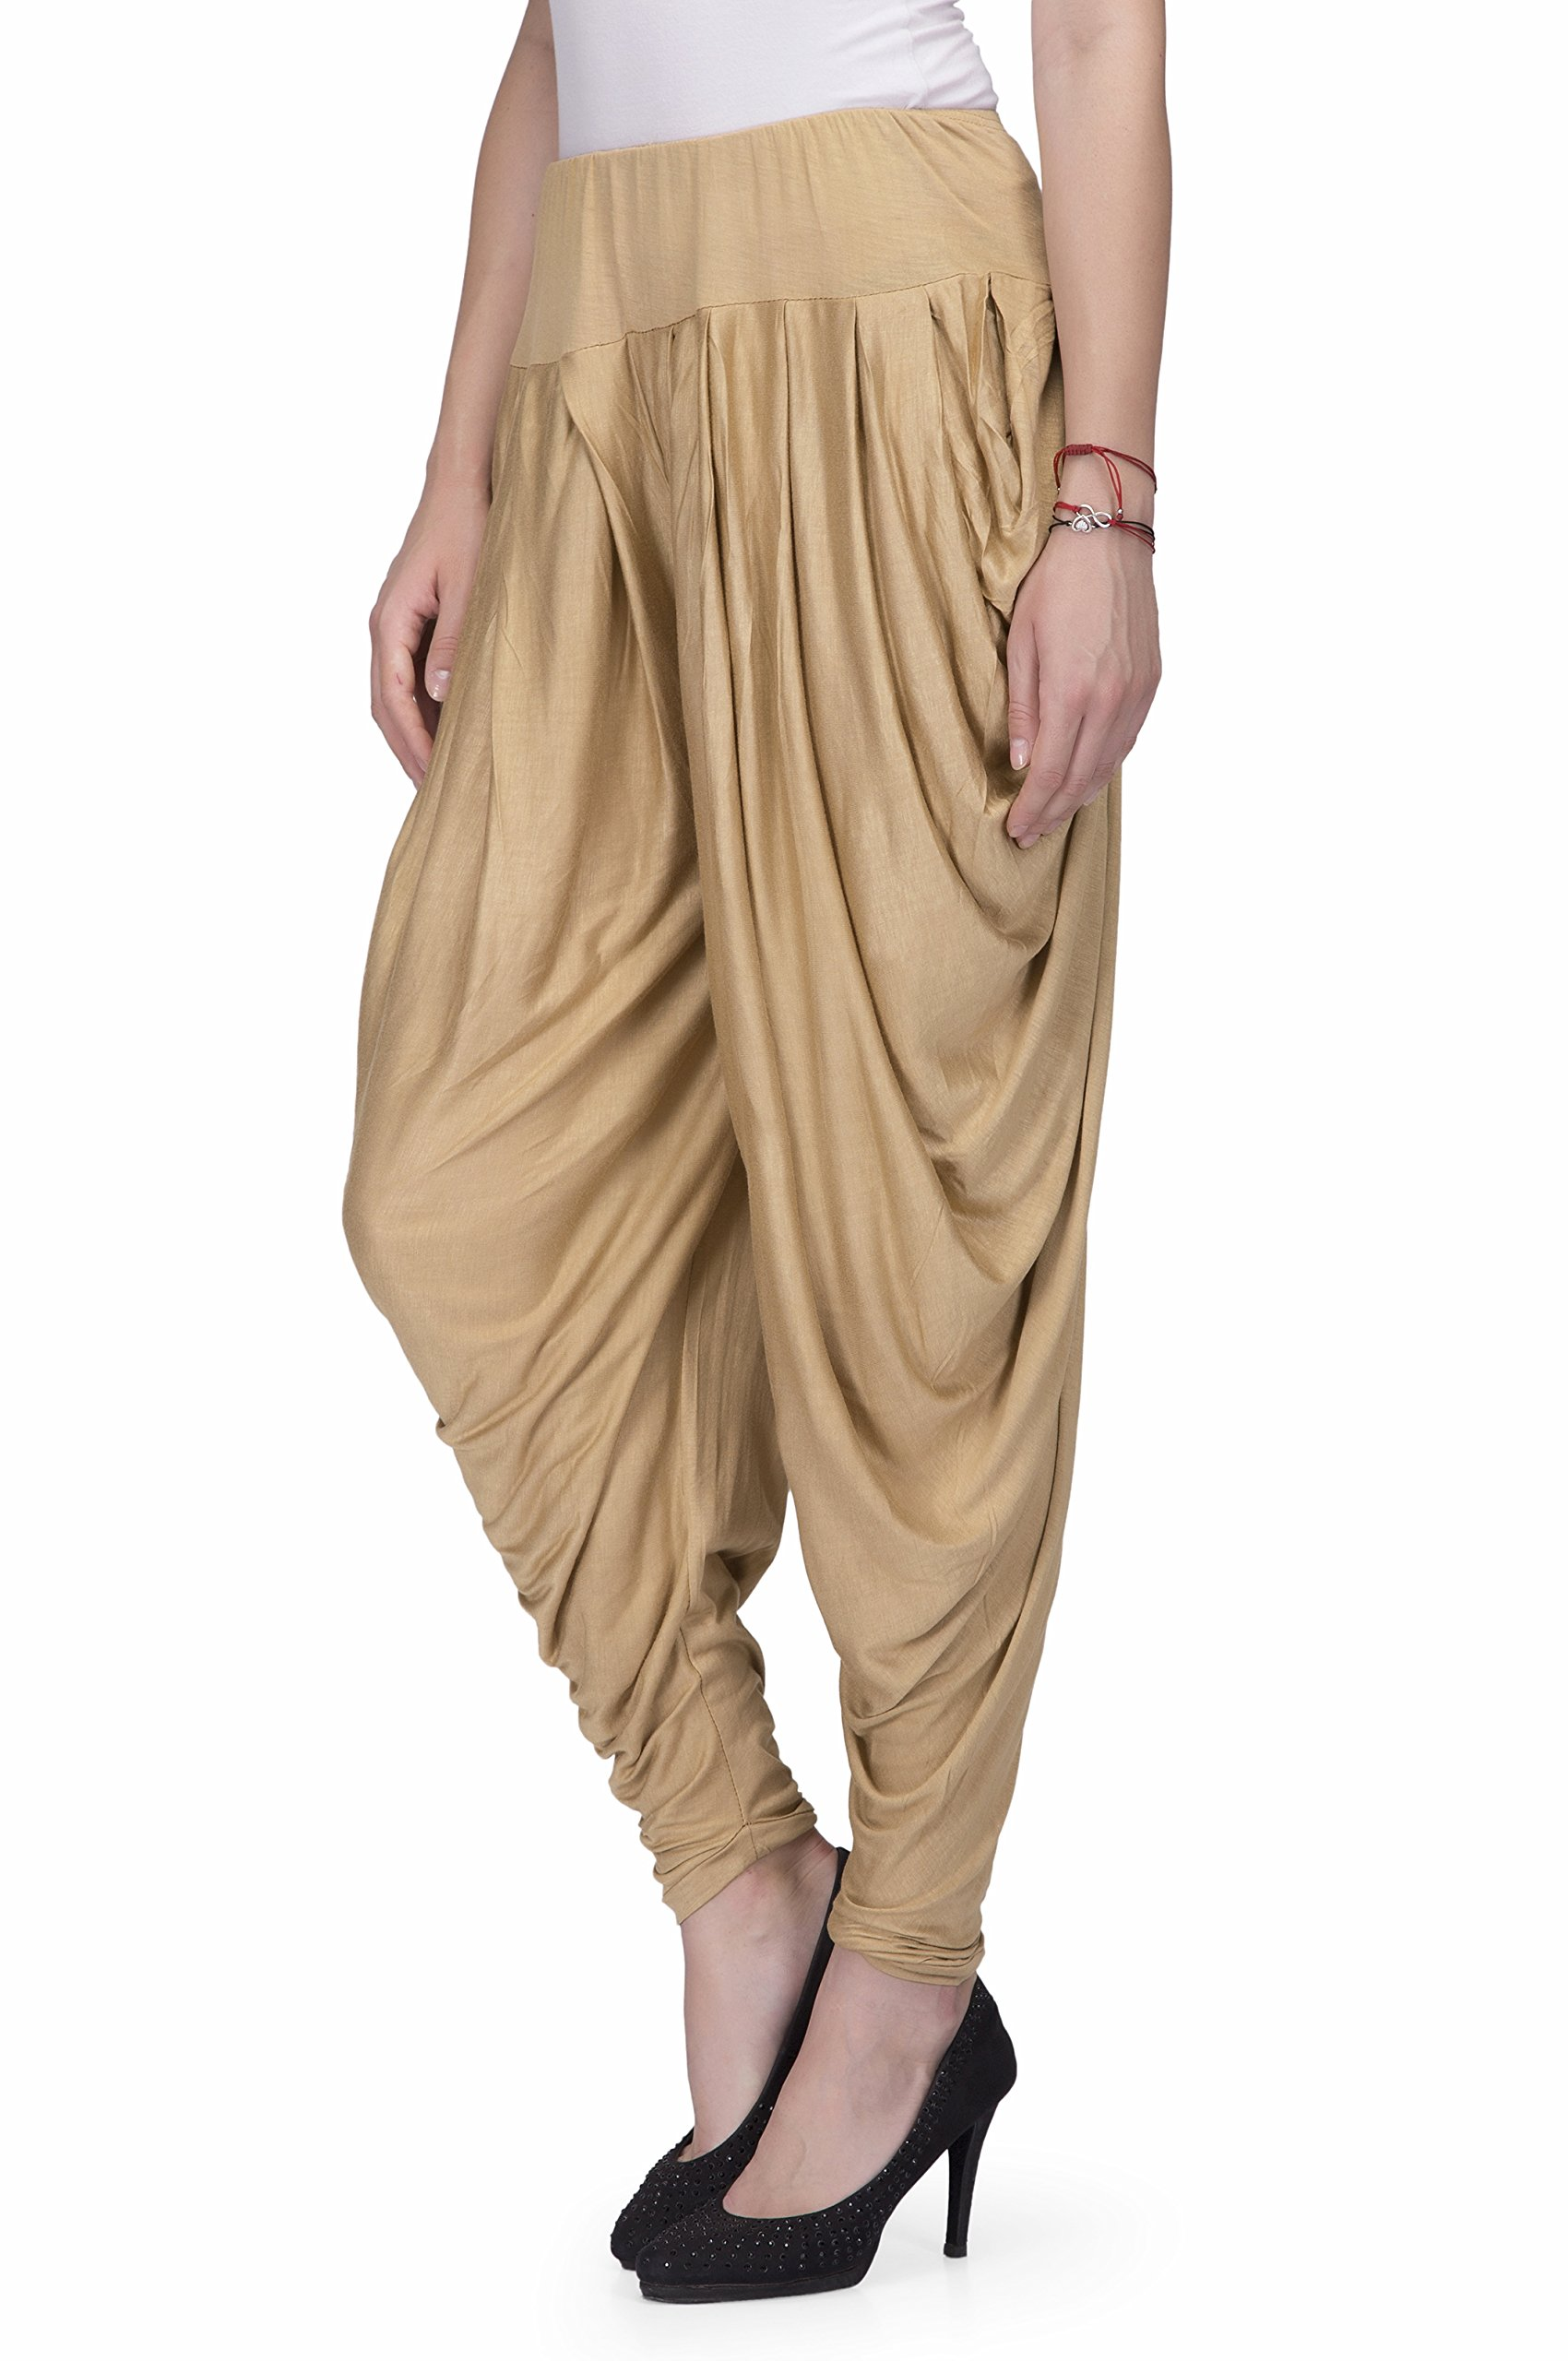 Legis Blue Relaxed Comfortable Cotton Blend Dhoti Pants Yoga Fitness Active wear for Women Dance - Free Size (Gold)